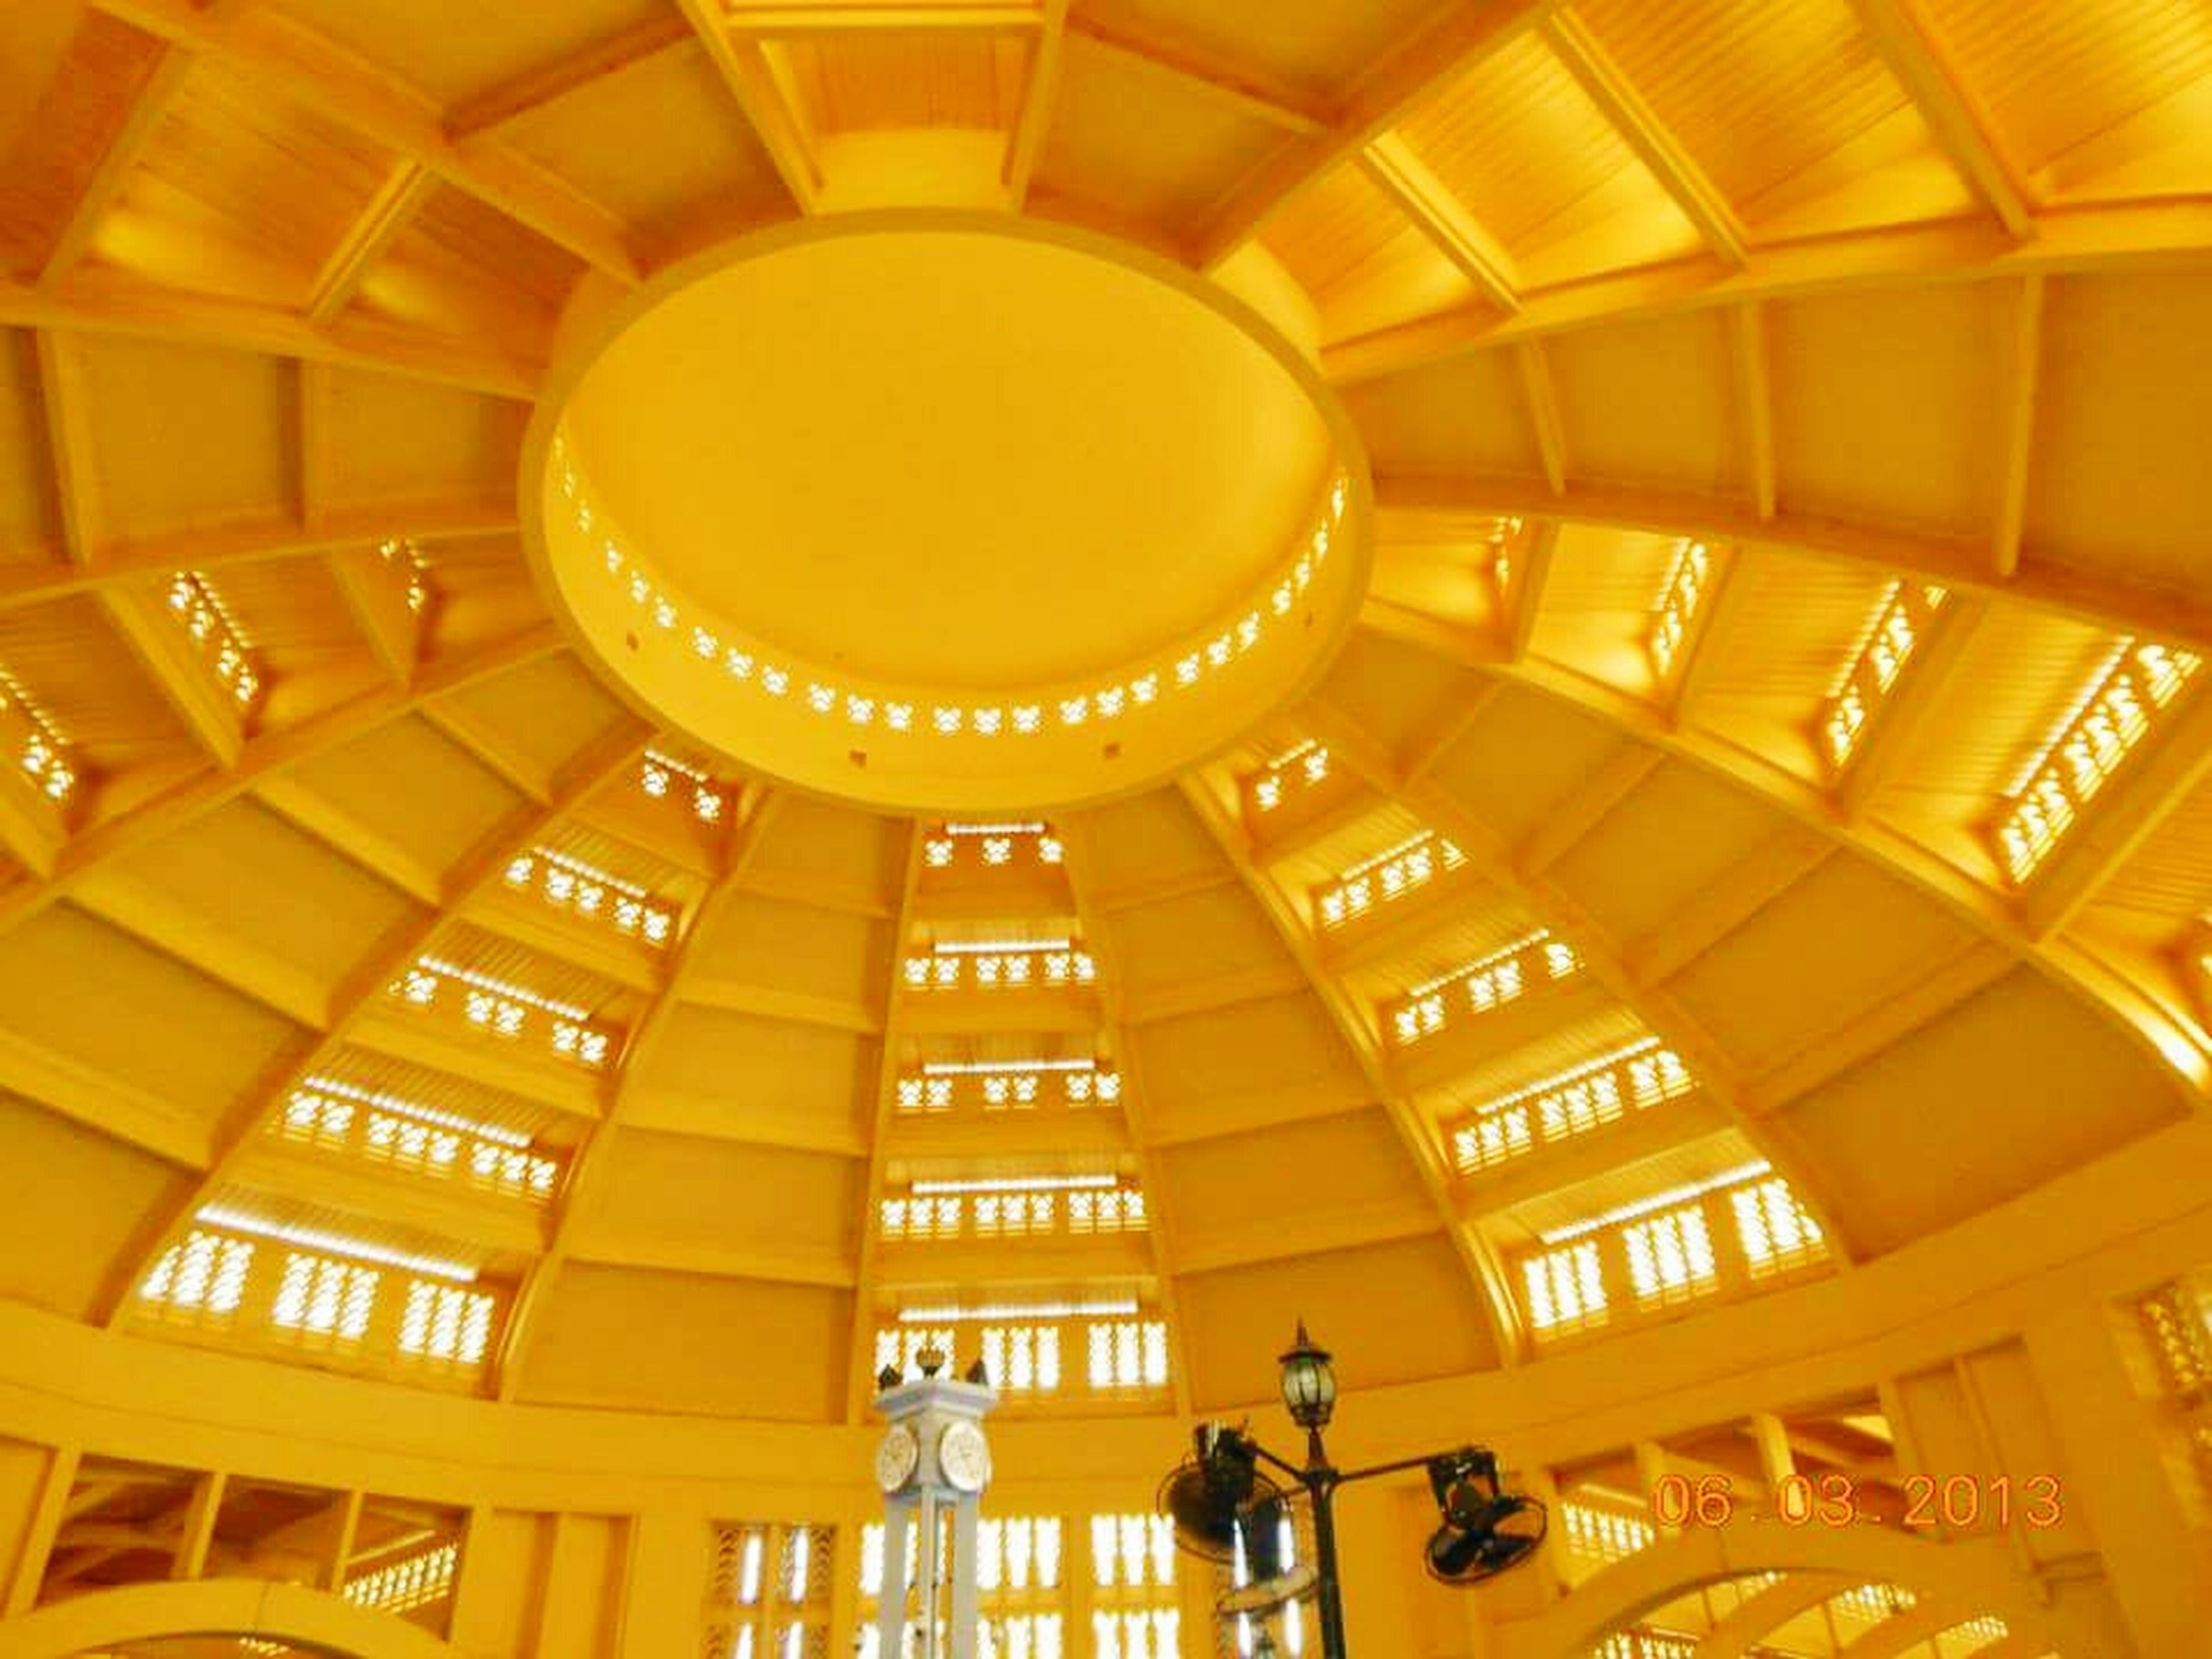 indoors, architecture, built structure, low angle view, illuminated, ceiling, modern, building, architectural feature, lighting equipment, building exterior, yellow, interior, no people, pattern, glass - material, window, shopping mall, city, in a row